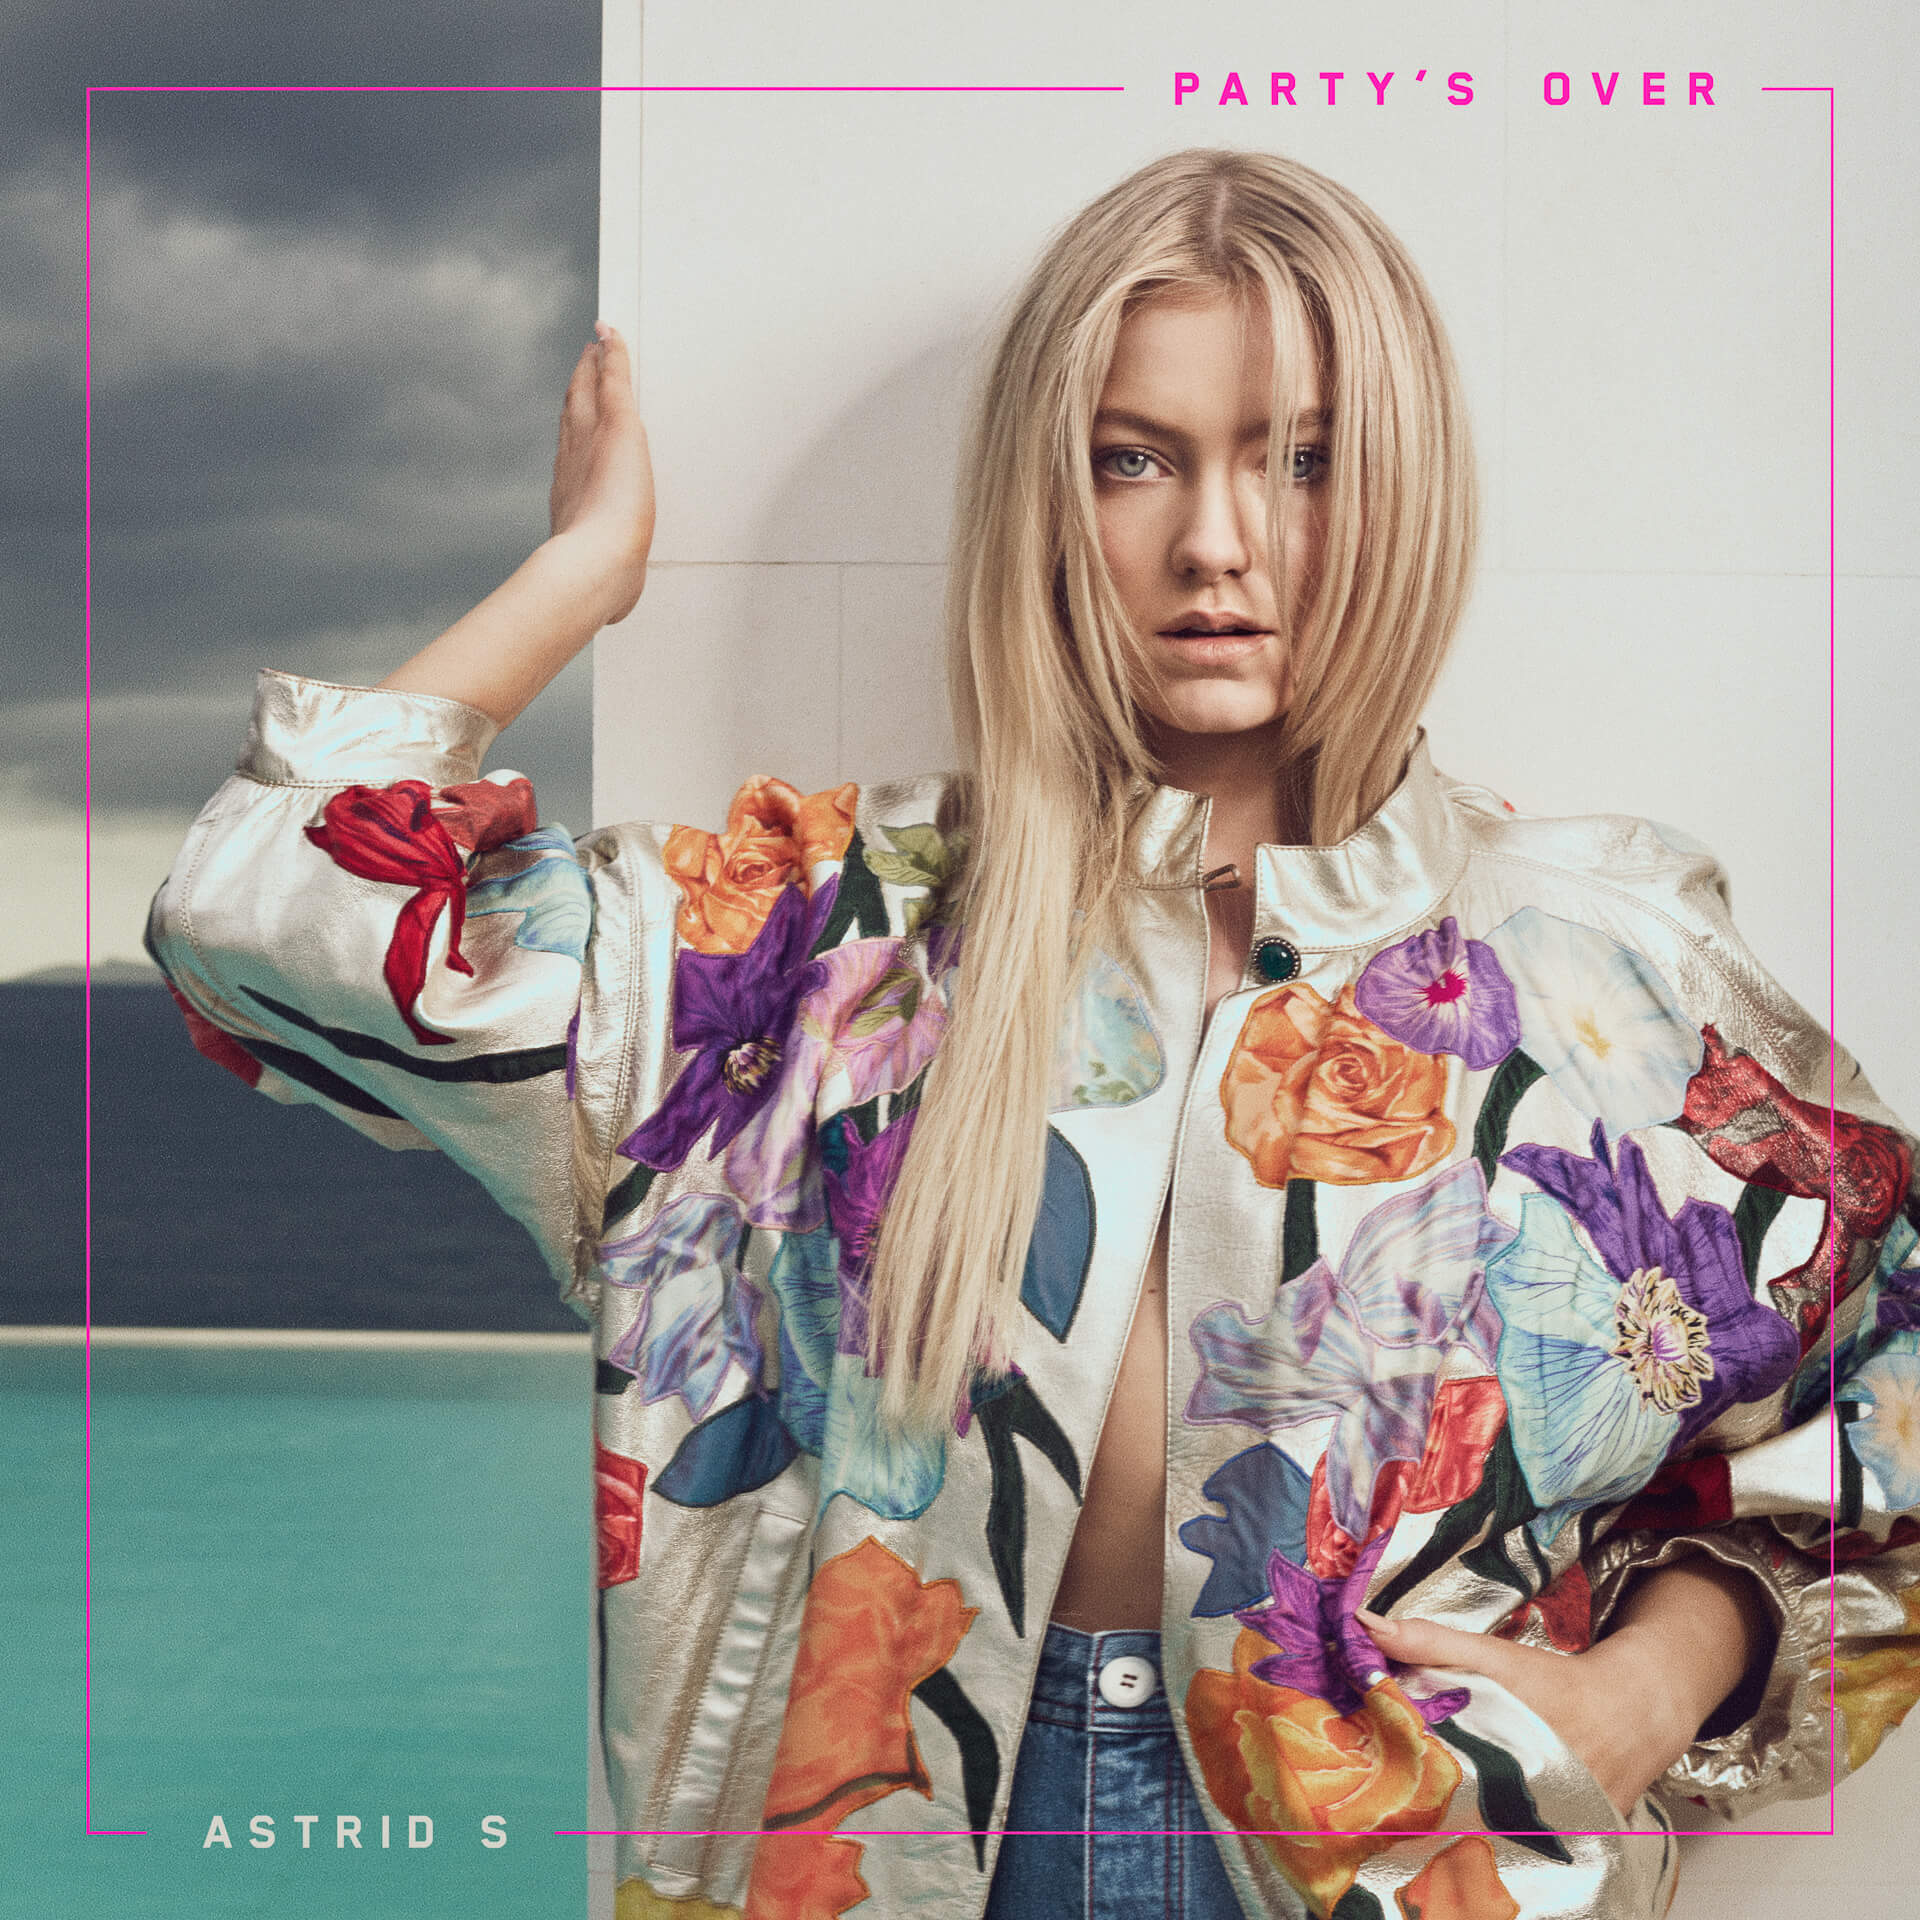 Astrid S – Commissioned Work